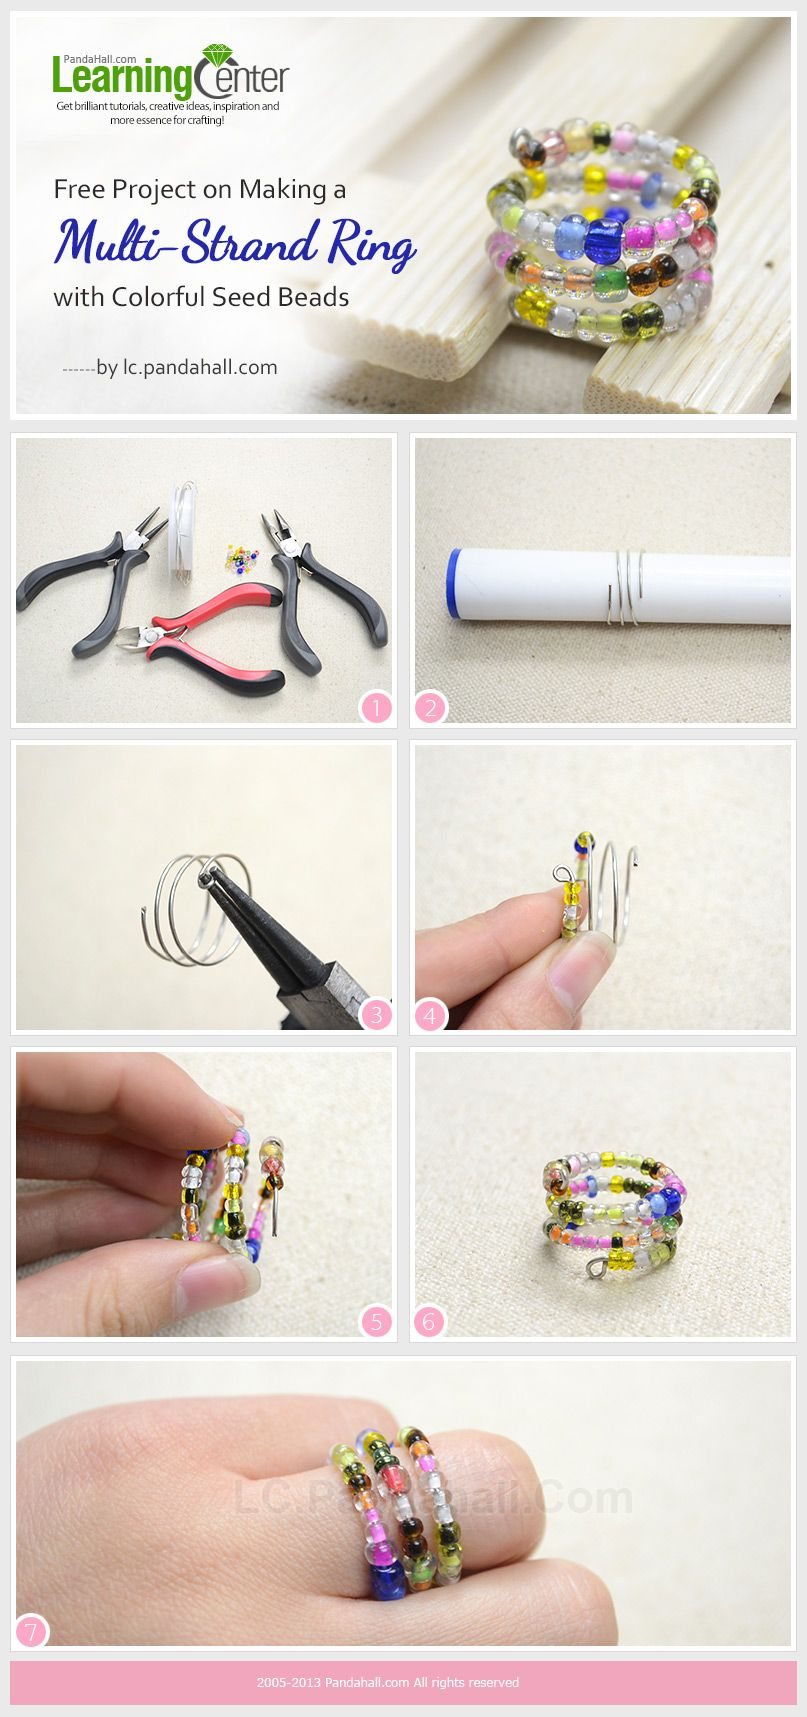 Free Project on Making a Multi-Strand Ring with Colorful Seed Beads ...